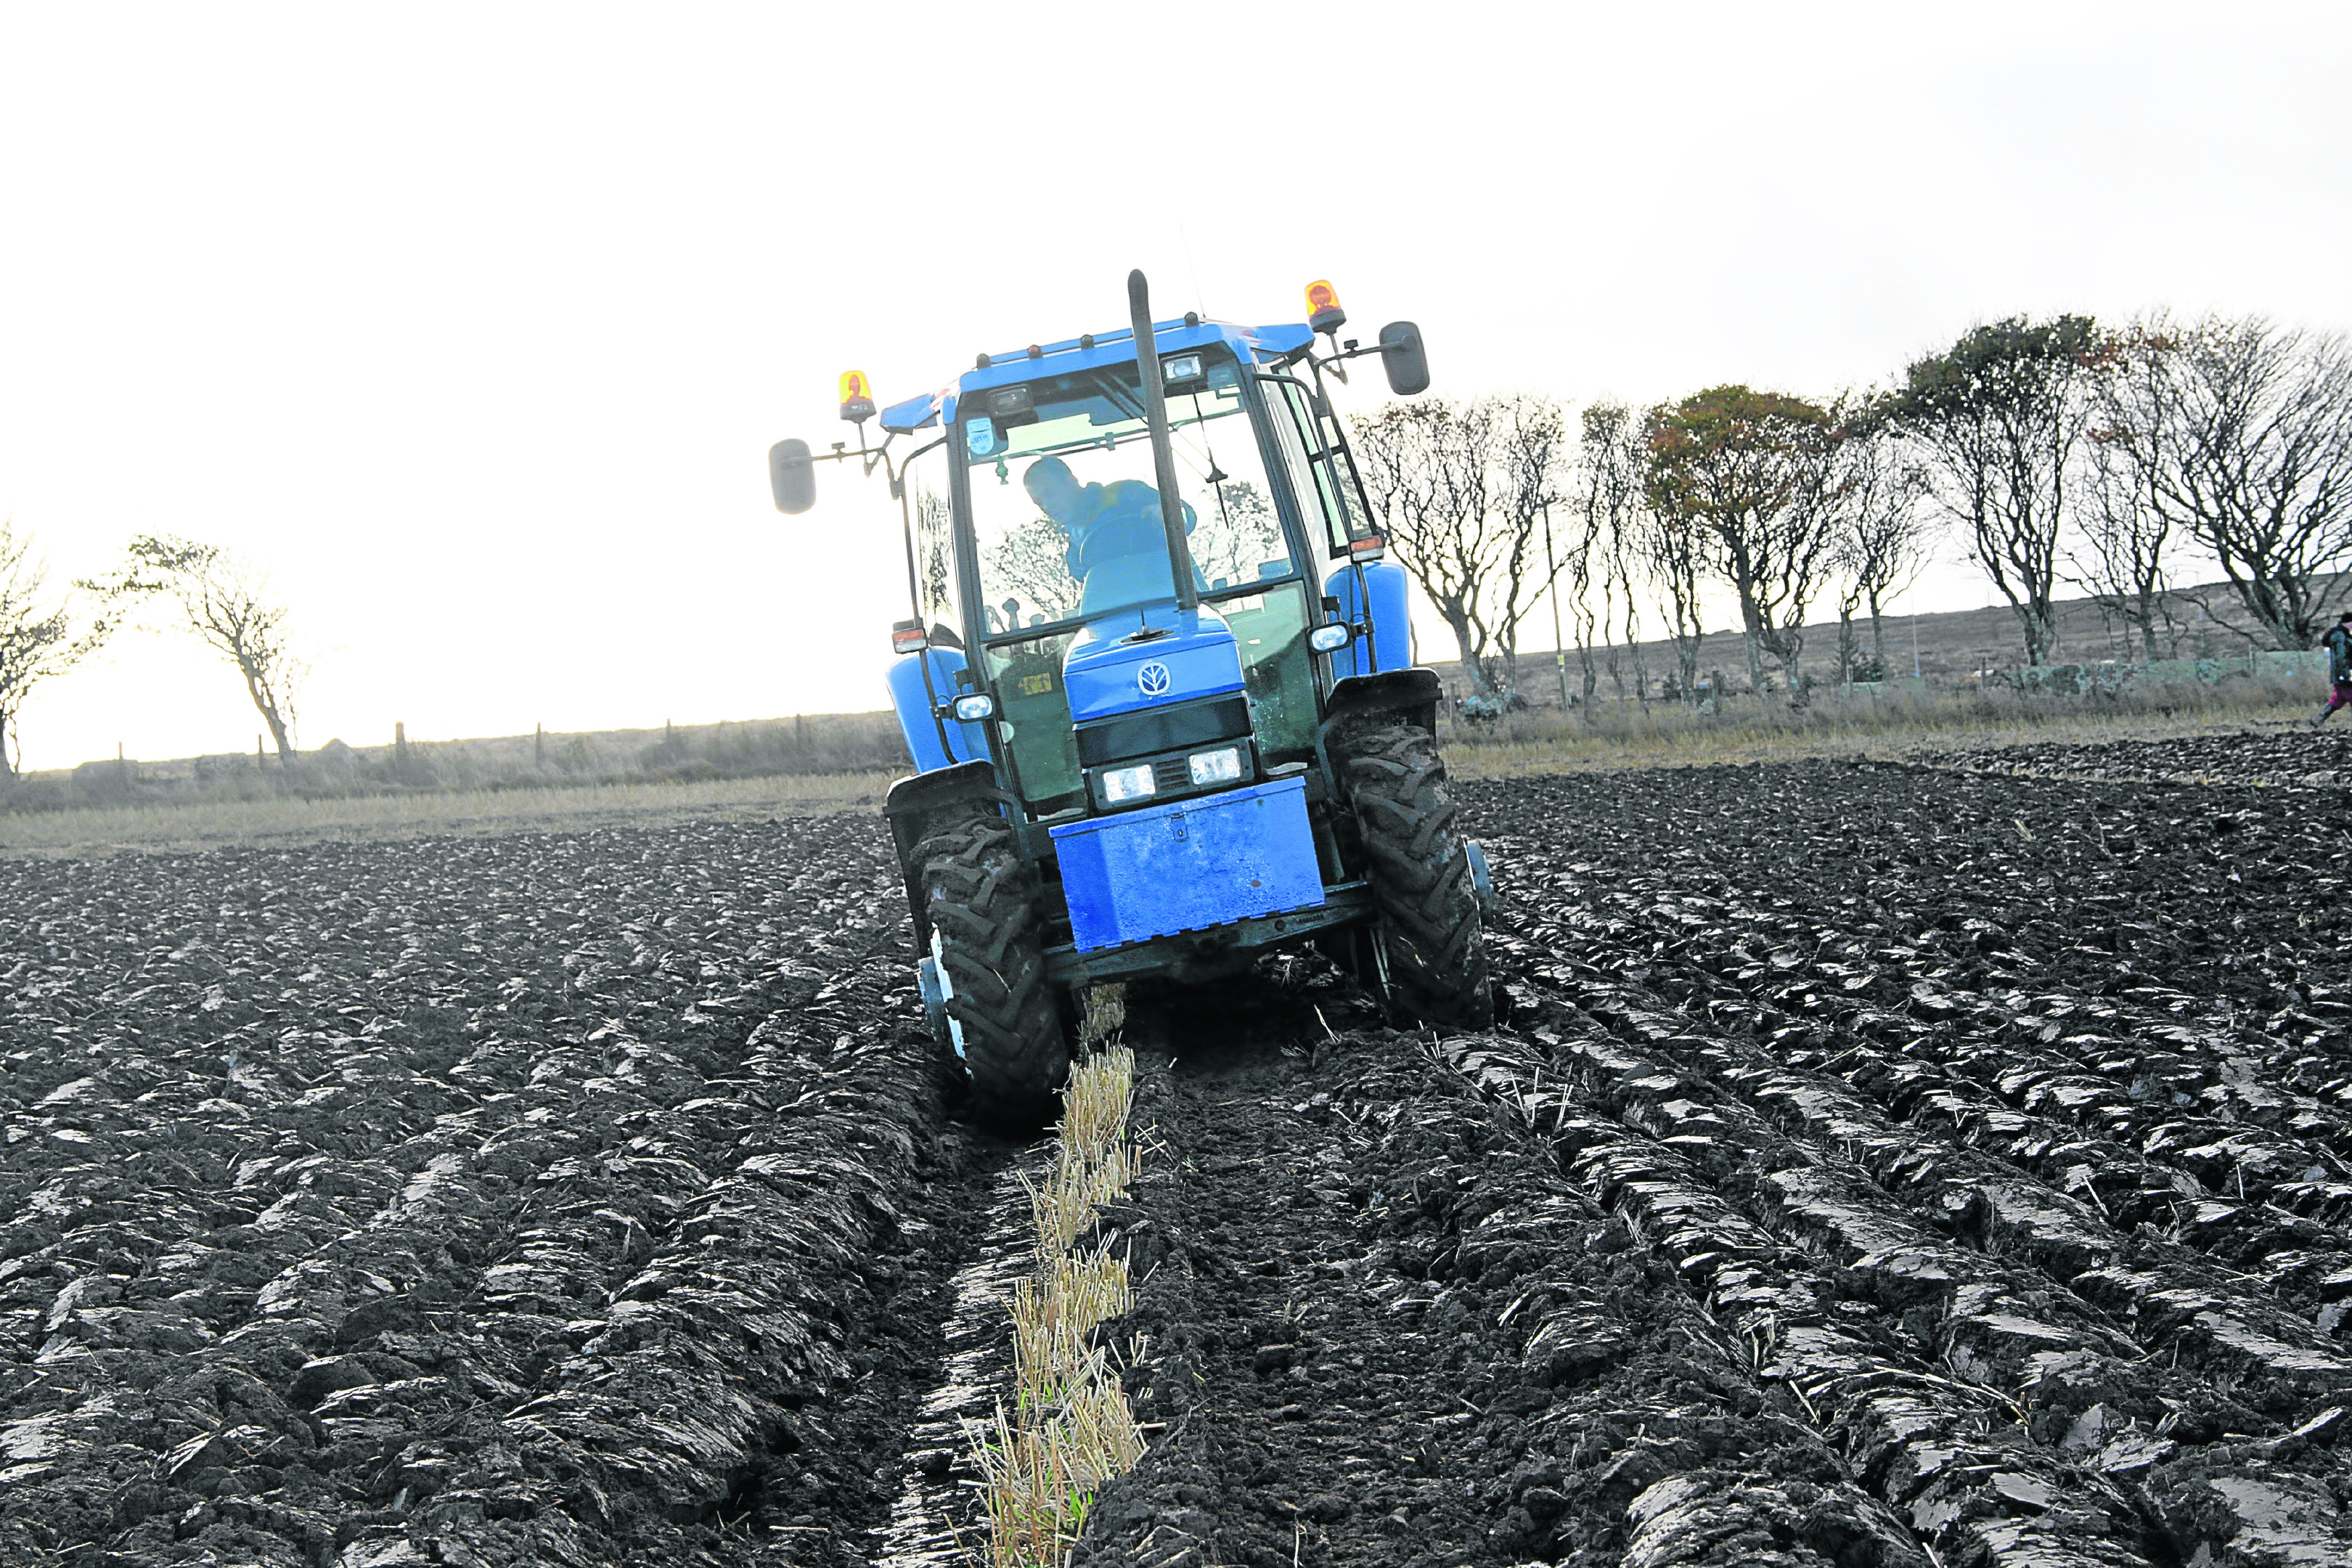 Gavin Robertson, Barrock driving a New Holland 7740 tractor with a 2 furrow reversible Keverneland  plough on his way to scooping the Champion of the field at the annual North and West Caithness Ploughing Association match held at Stanstill Farm Bower.